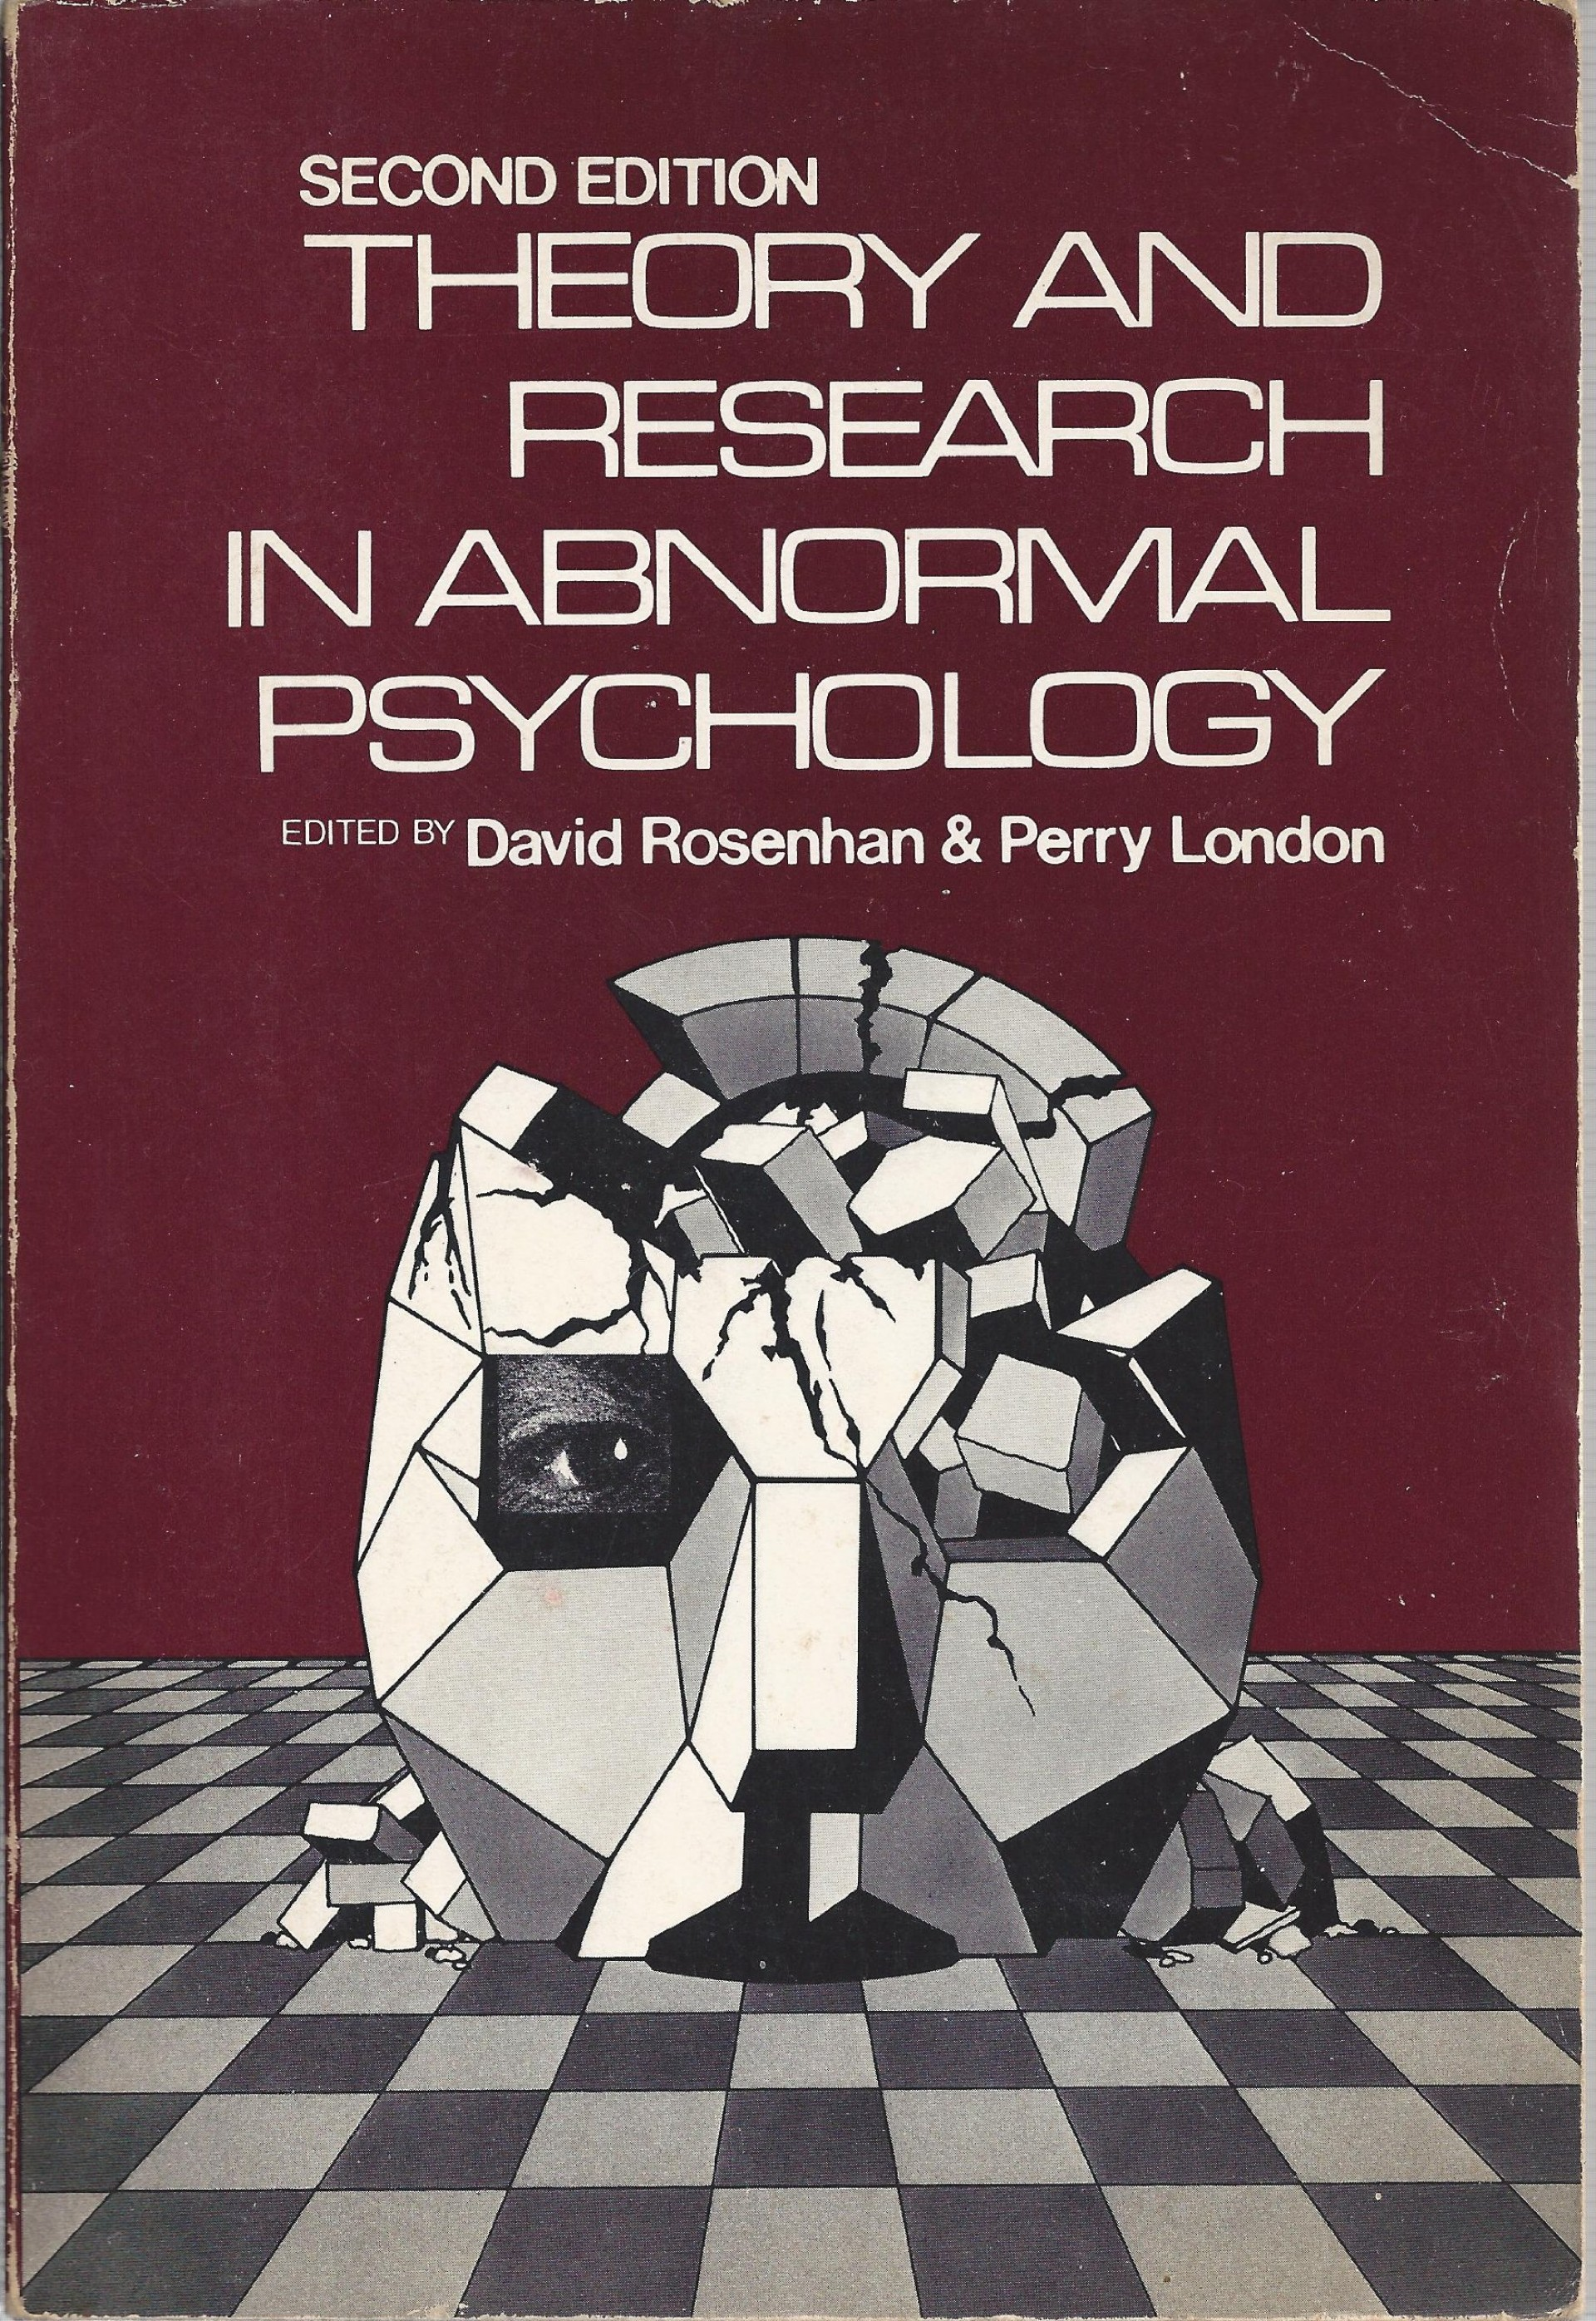 029 A1ibkjukrol Research Paper Abnormal Psychology Topics Unique For 1920